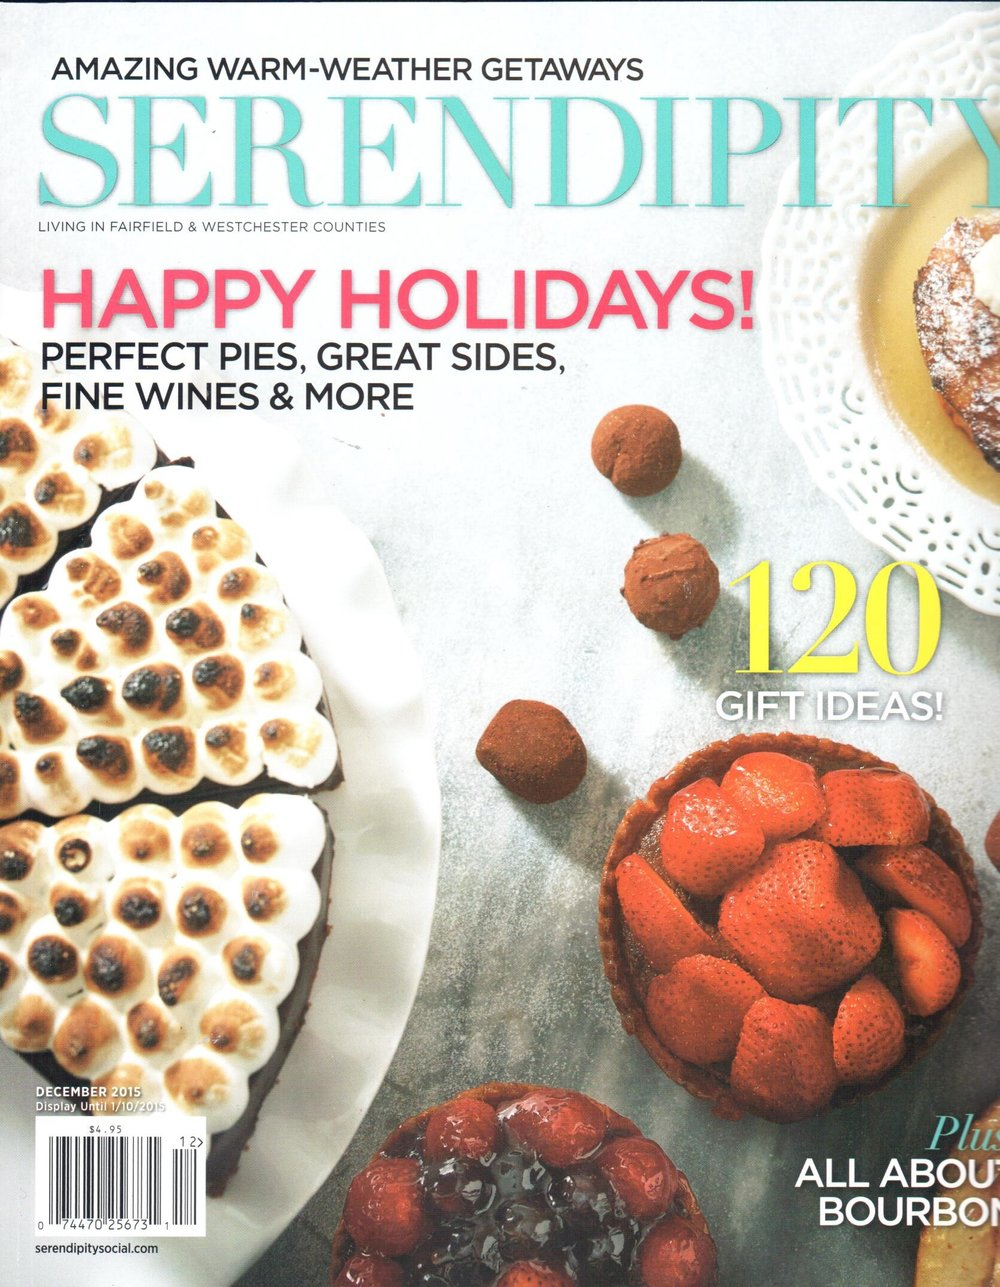 Serendipty-cover-cropped-1.jpg